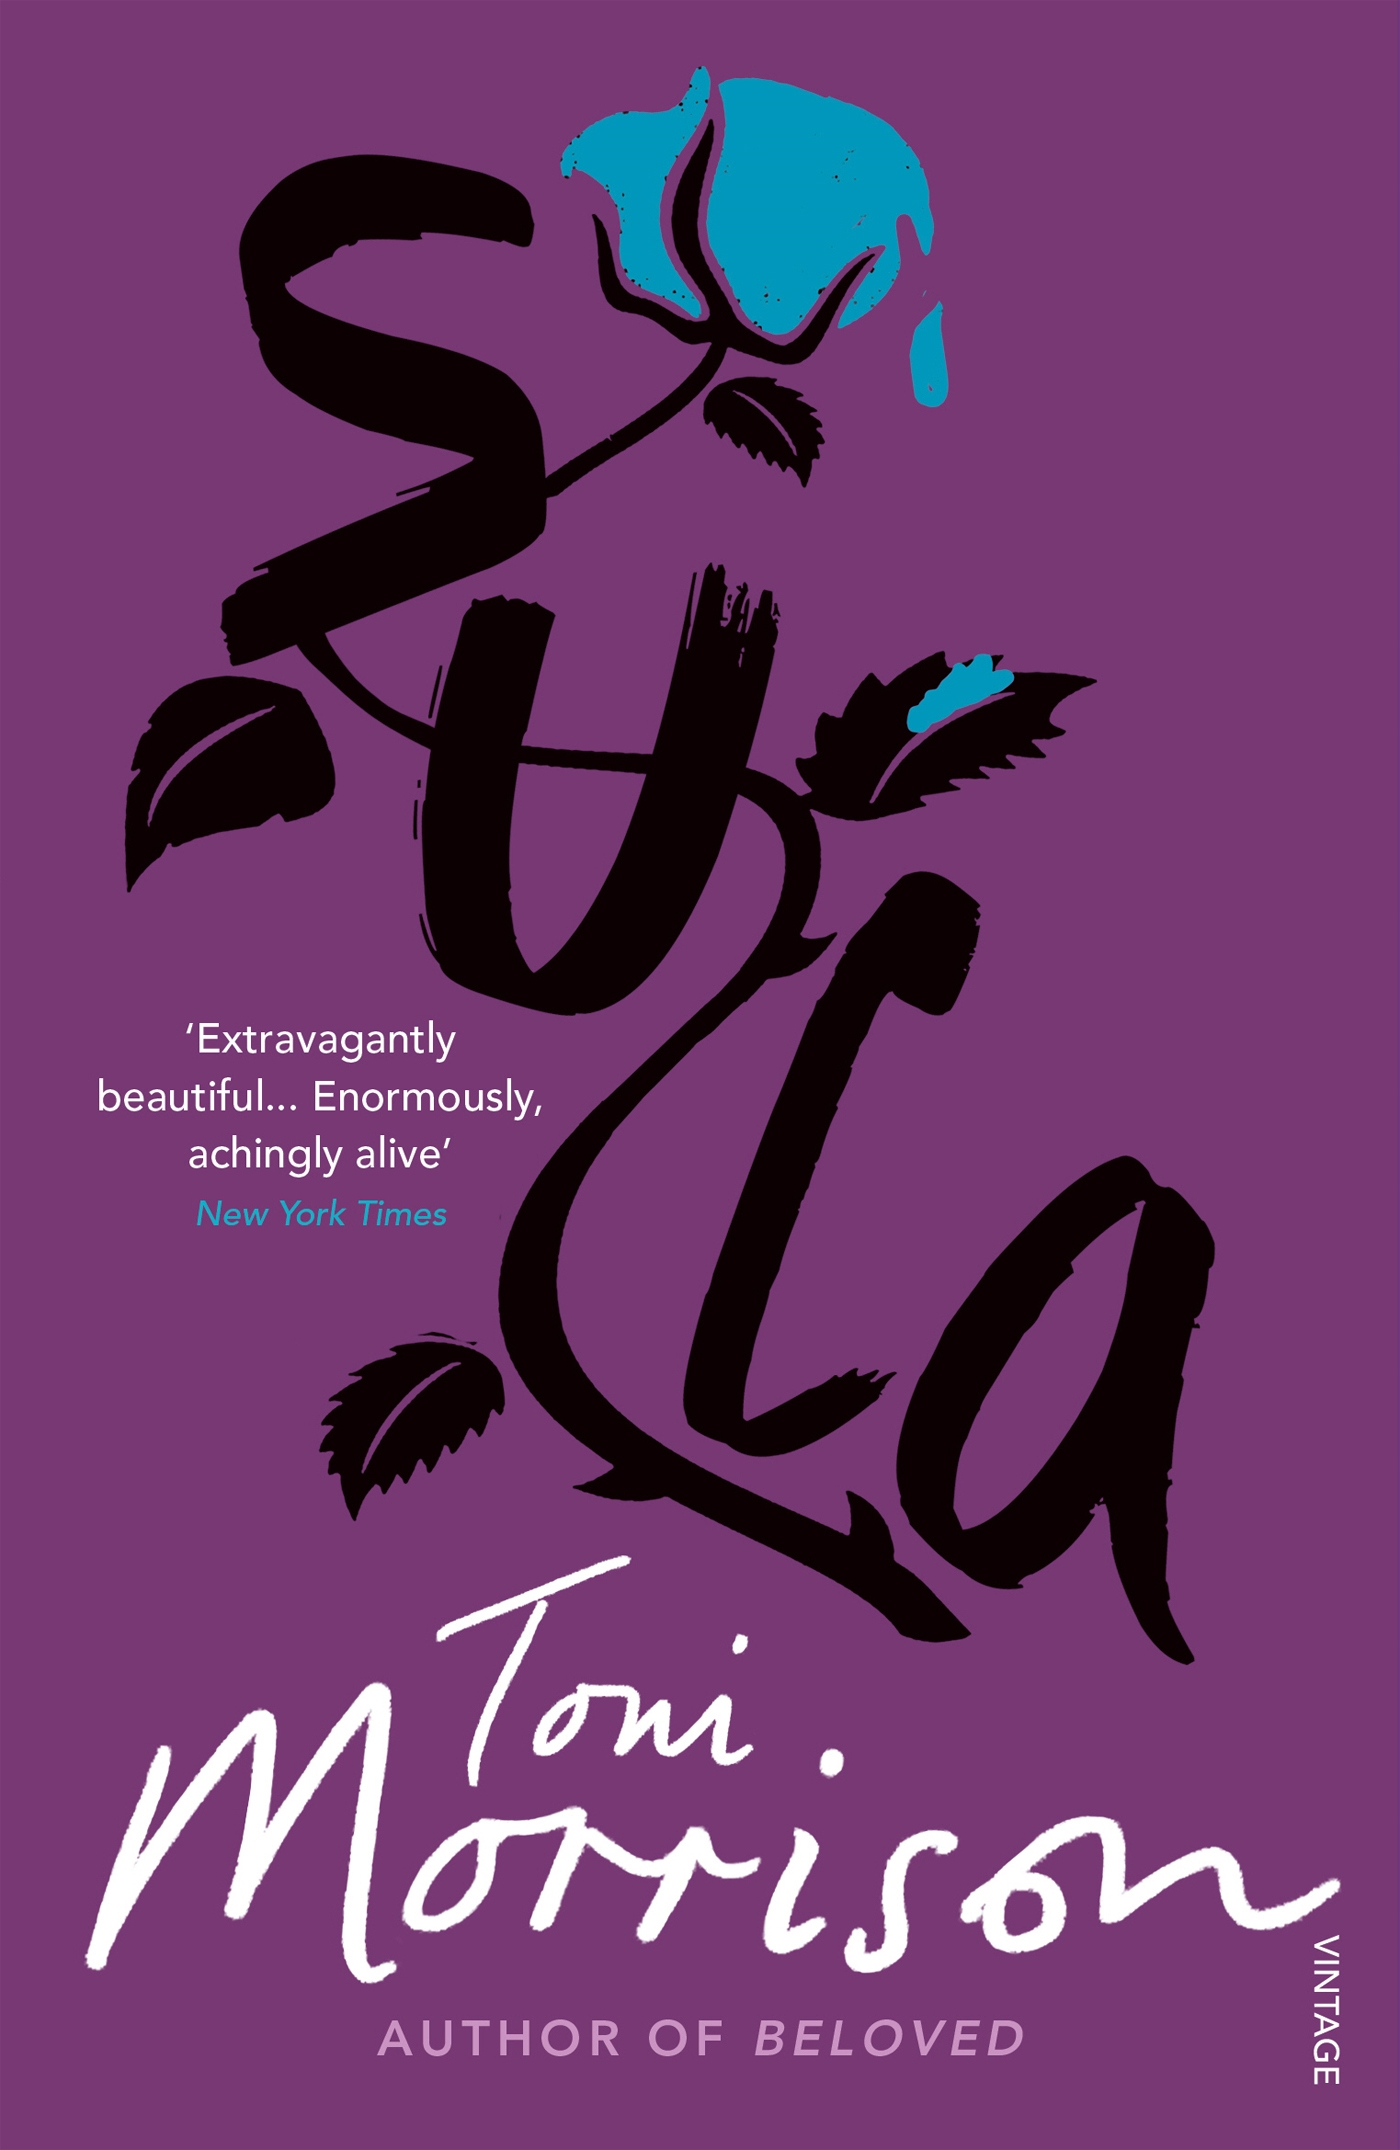 sula by toni morrison Toni morrison (b chloe ardelia wofford on february 18, 1931) is the nobel prize winning author of 10 novels, and has also penned 7 non-fiction works, 2 plays, and 3 childrens books.